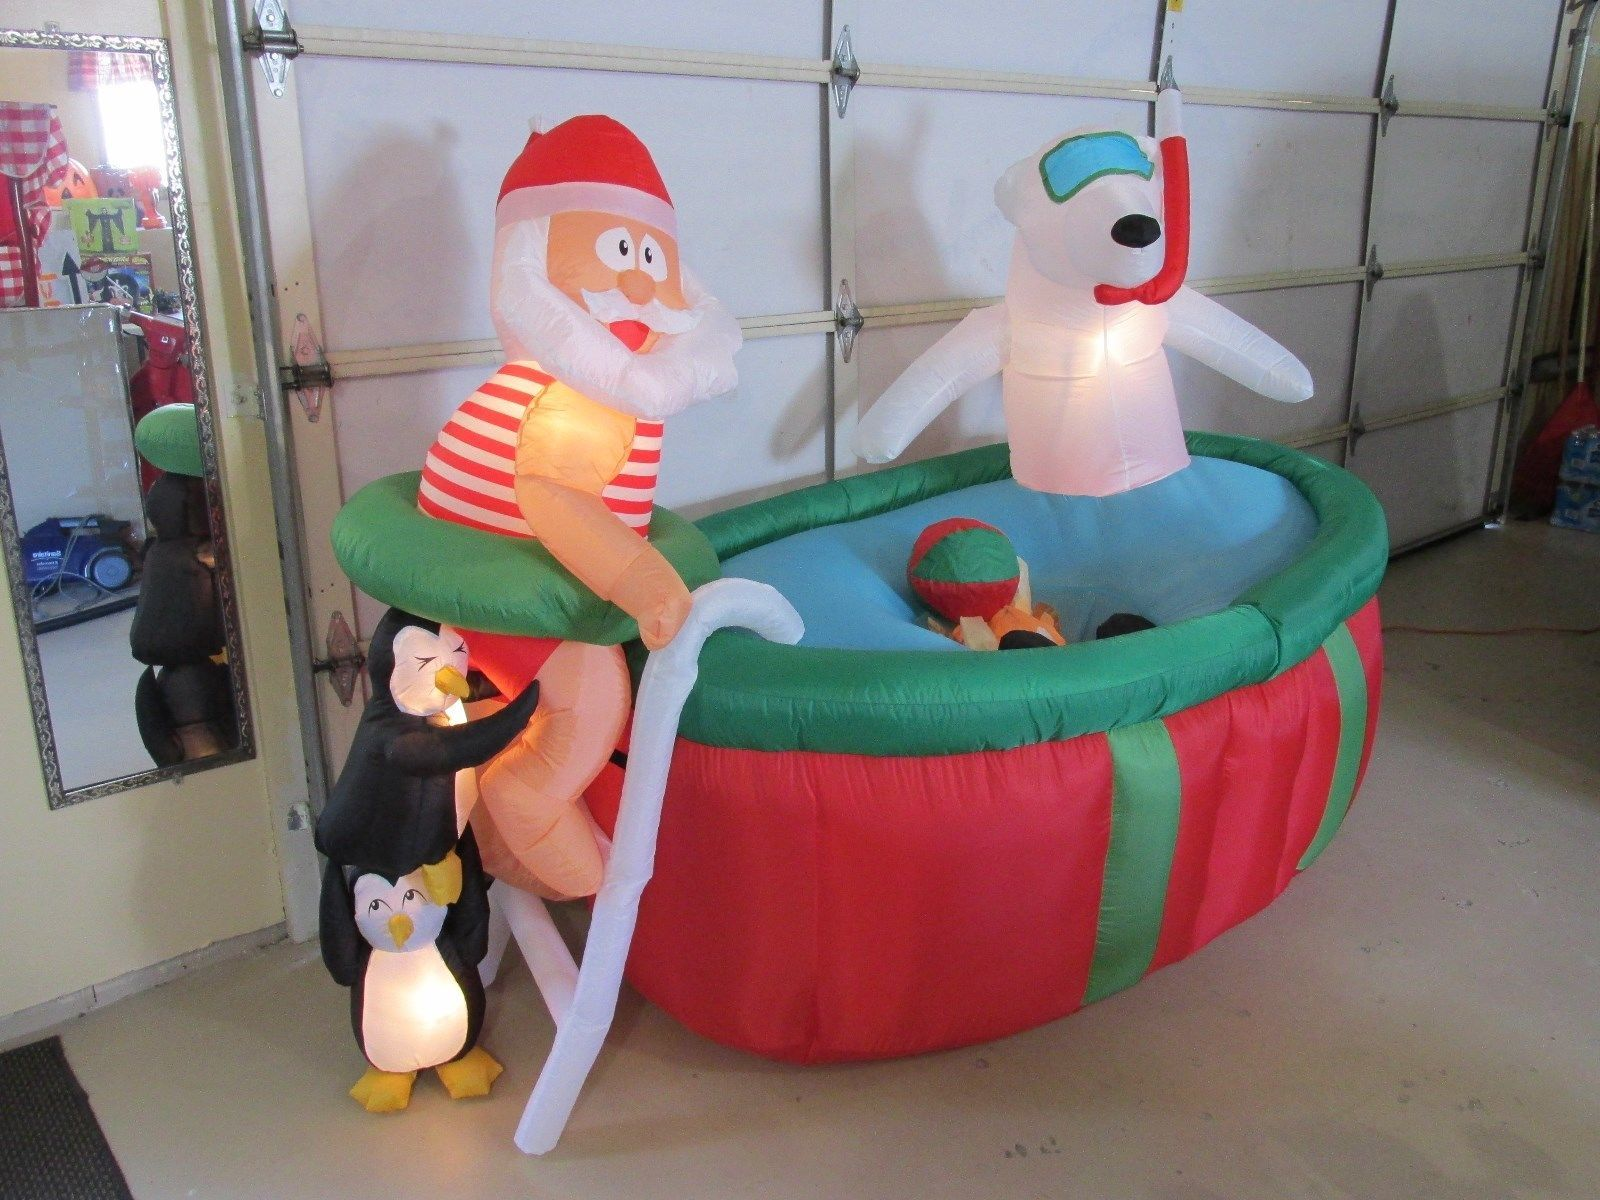 Display Model Gemmy Christmas Airblown Inflatable Animated Santa In Pool